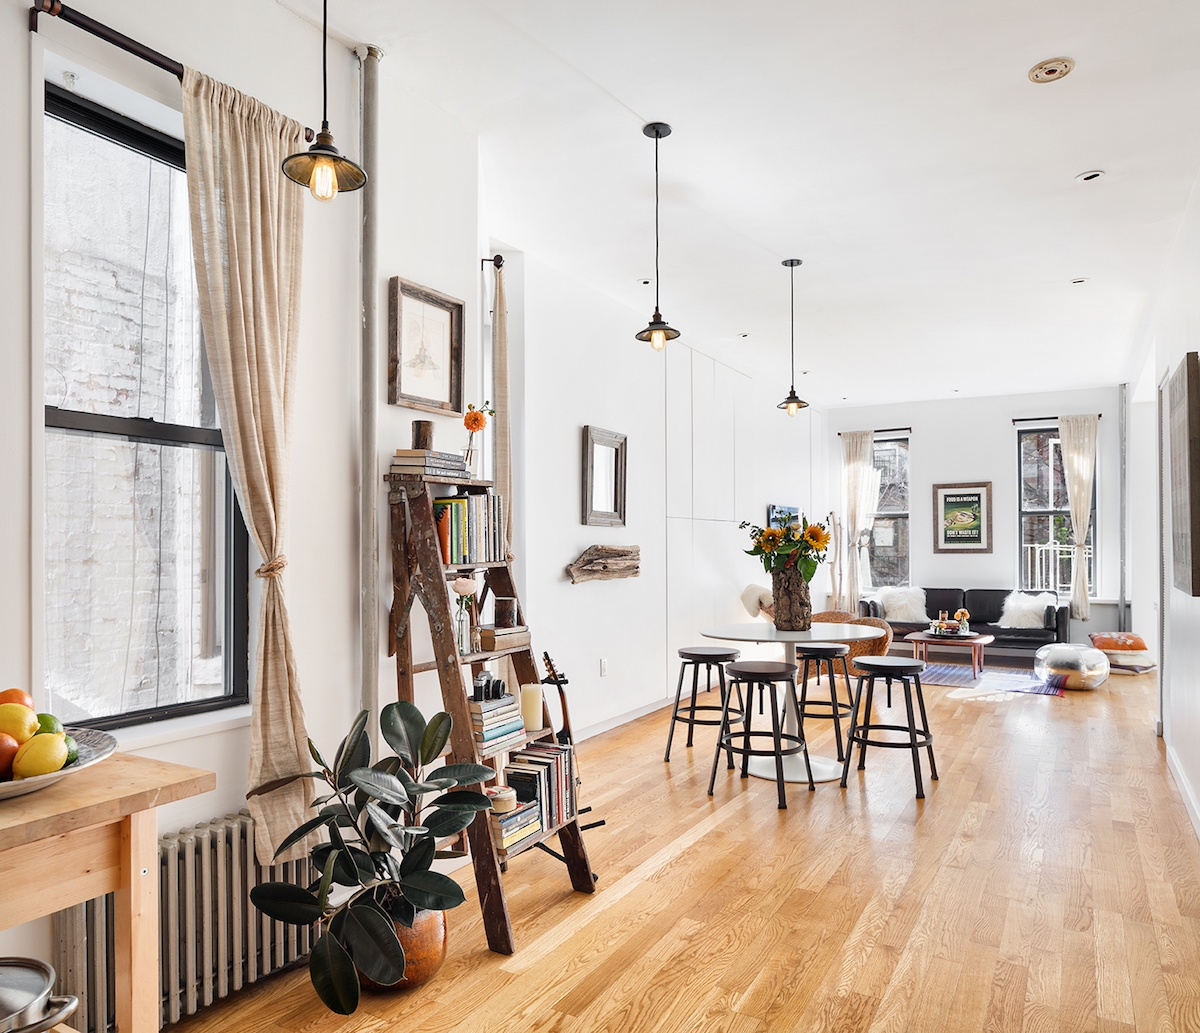 Incroyable This Charming Co Op On A Magical East Village Block Has Layout Options,  Storage Solutions And A $799K Ask